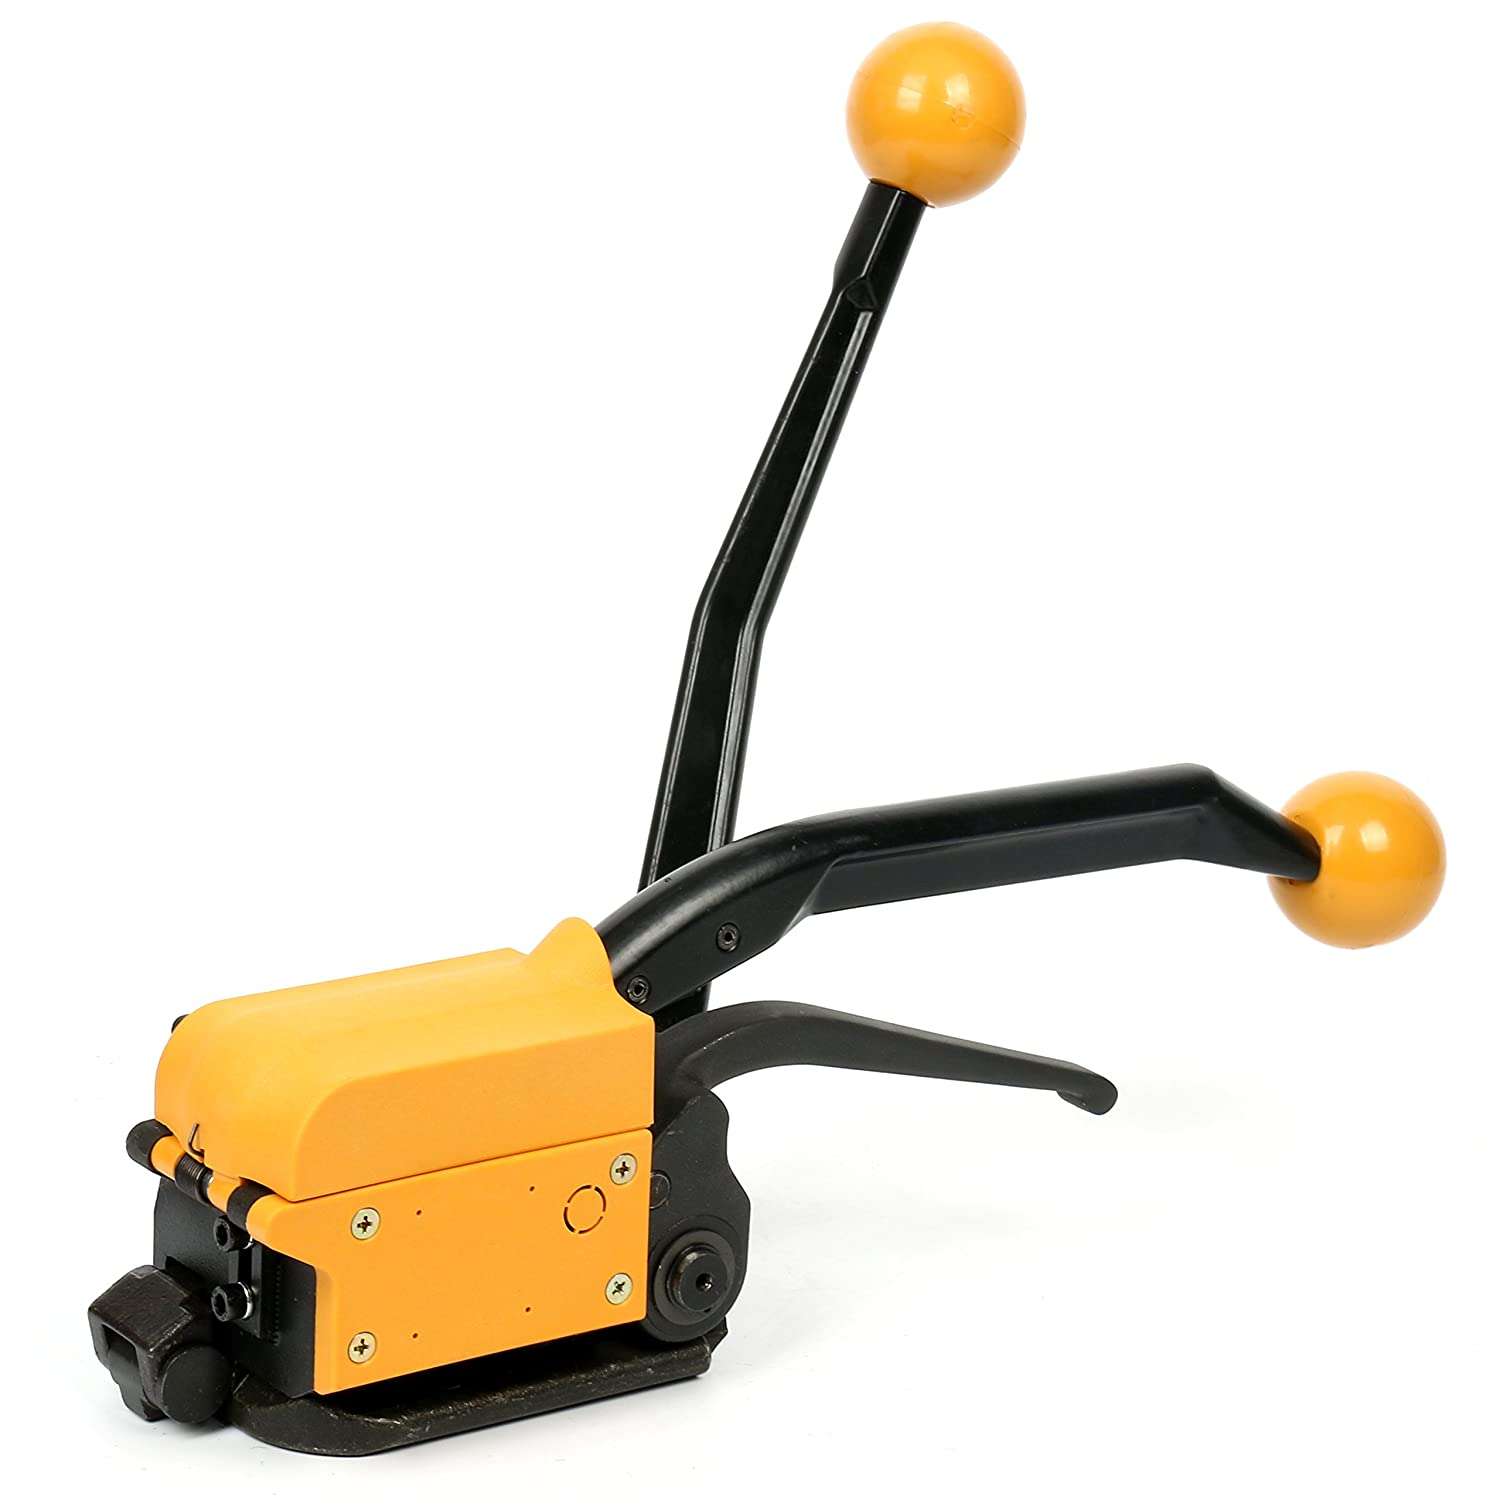 Yaetek Steel Strapping Tool A333 Manual Strapping Tool 1//2Inch 5//8Inch 3//4Inch Steel Straps Banding Sealless Combination Tool